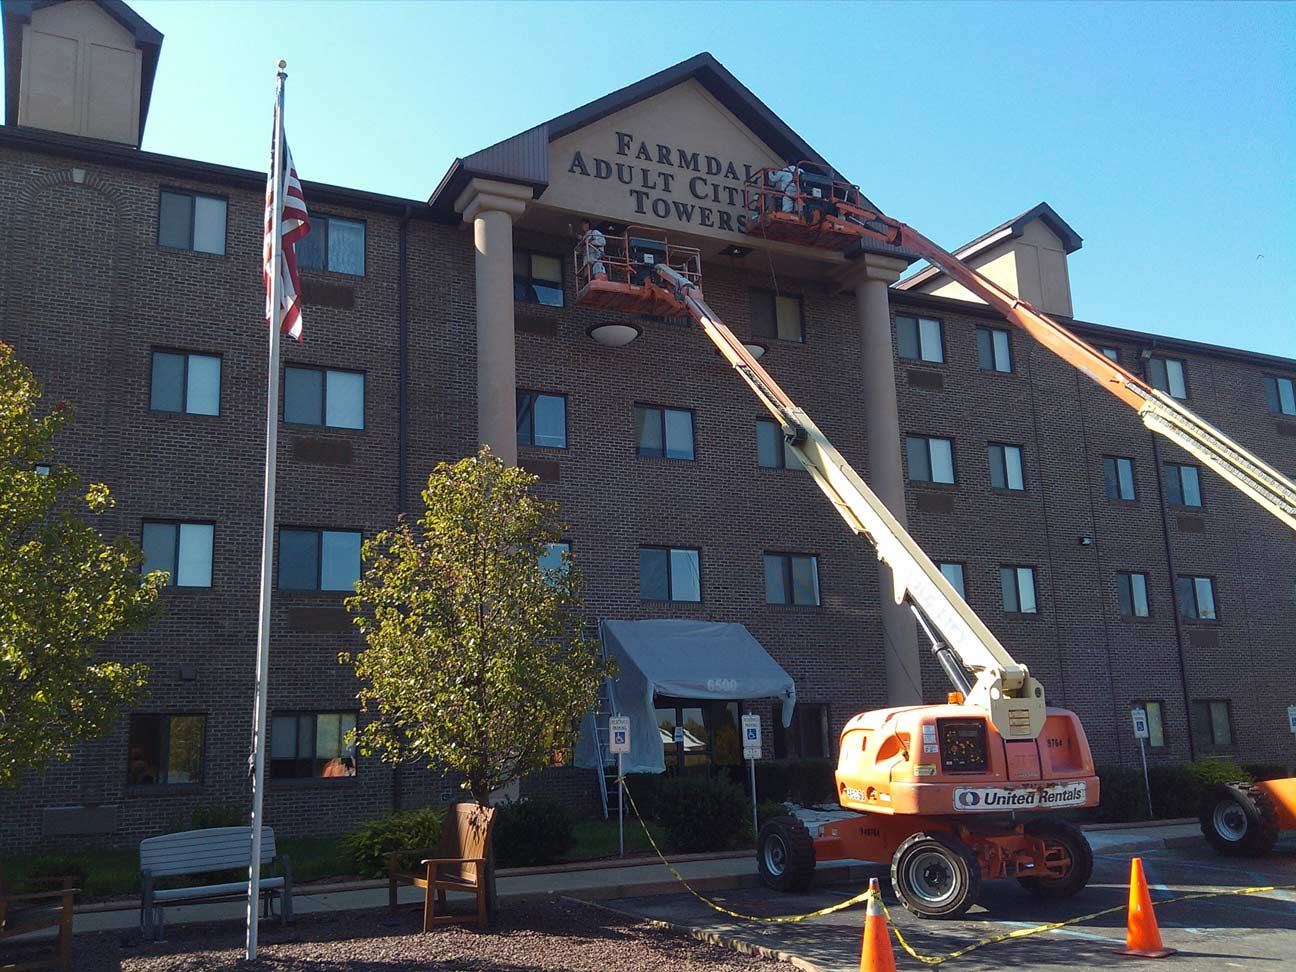 Commercial Painter in Louisville KY | H.F. Steilberg CO | Projects | Farmdale Adult Community Tower Commercial Portfolio